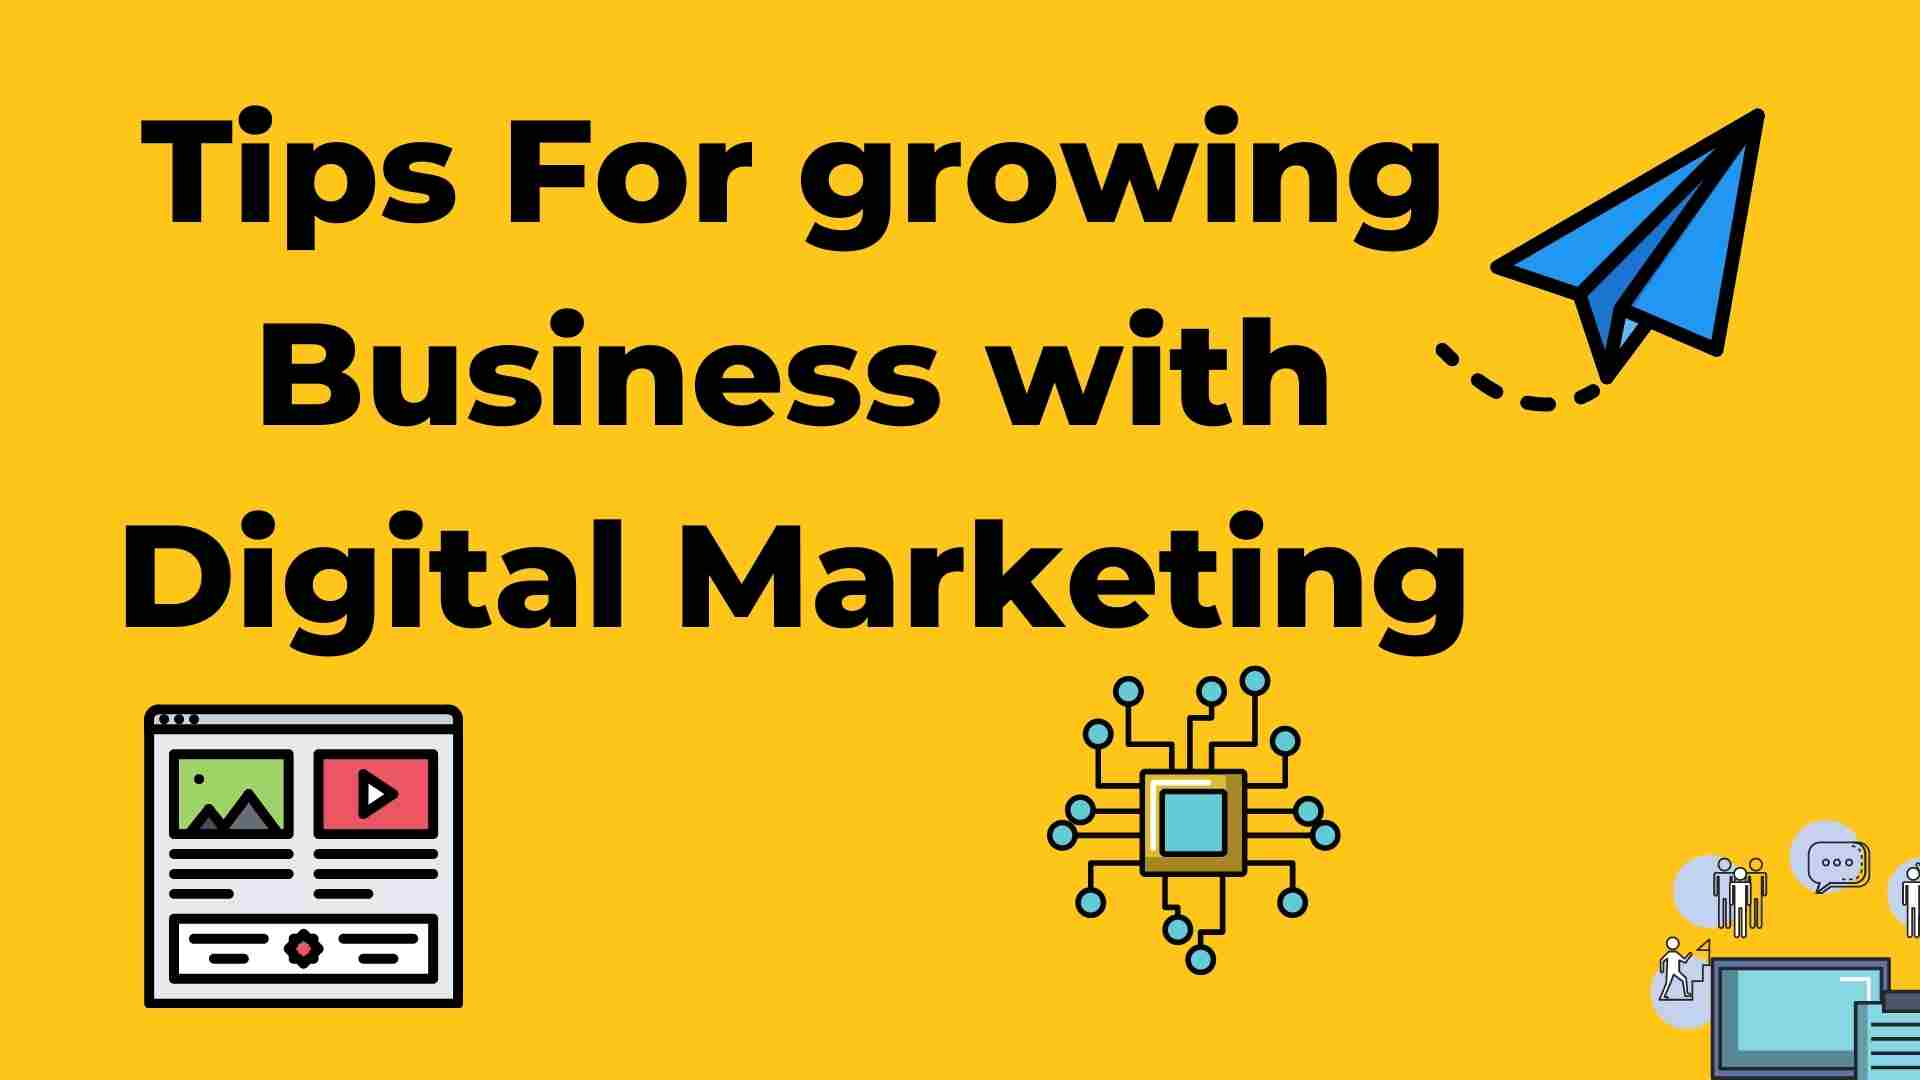 Tips for growing business with digital marketing